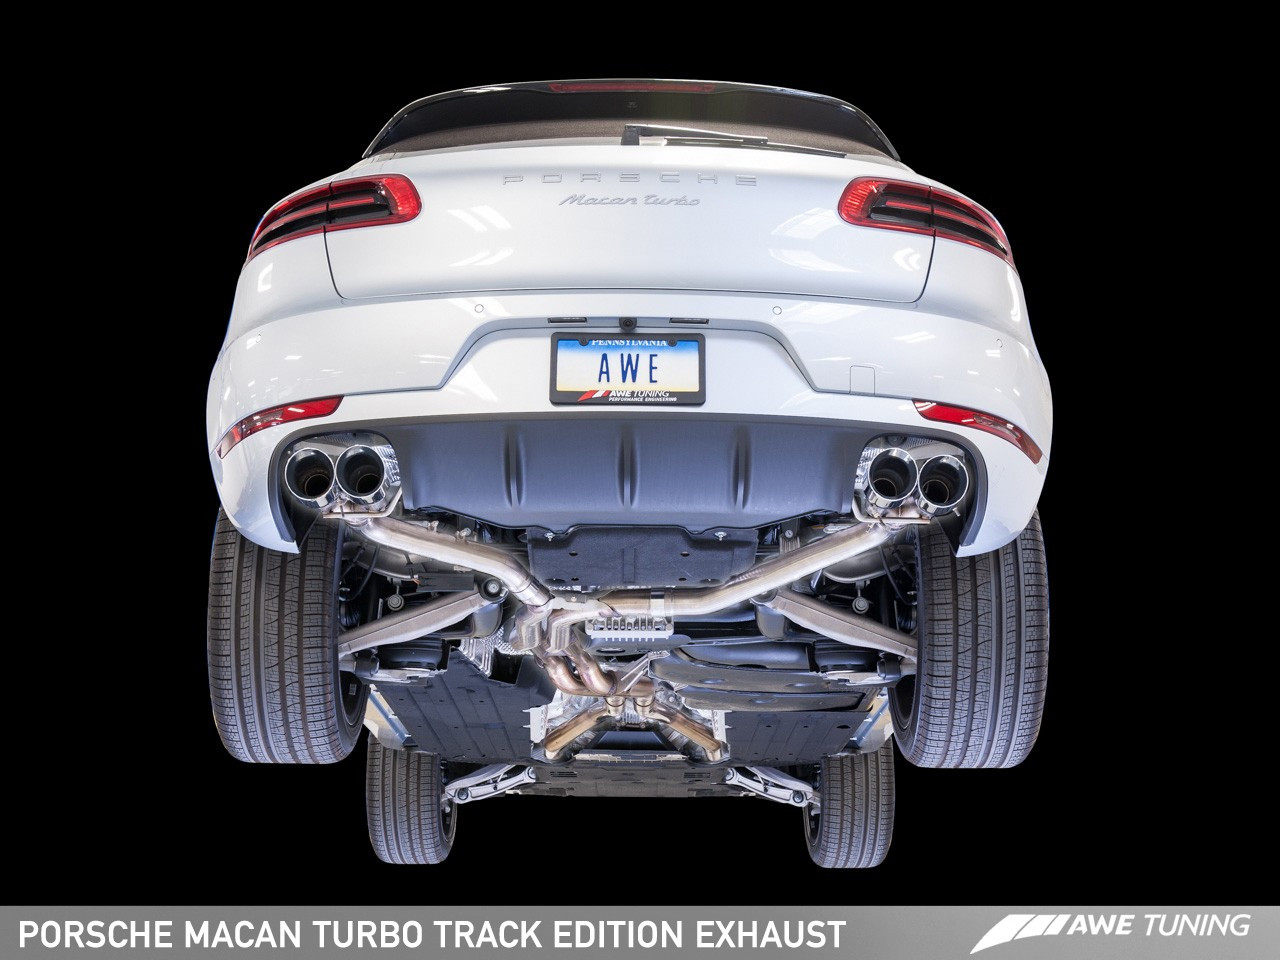 awe tuning track edition exhaust system diamond black 102mm tips for porsche macan